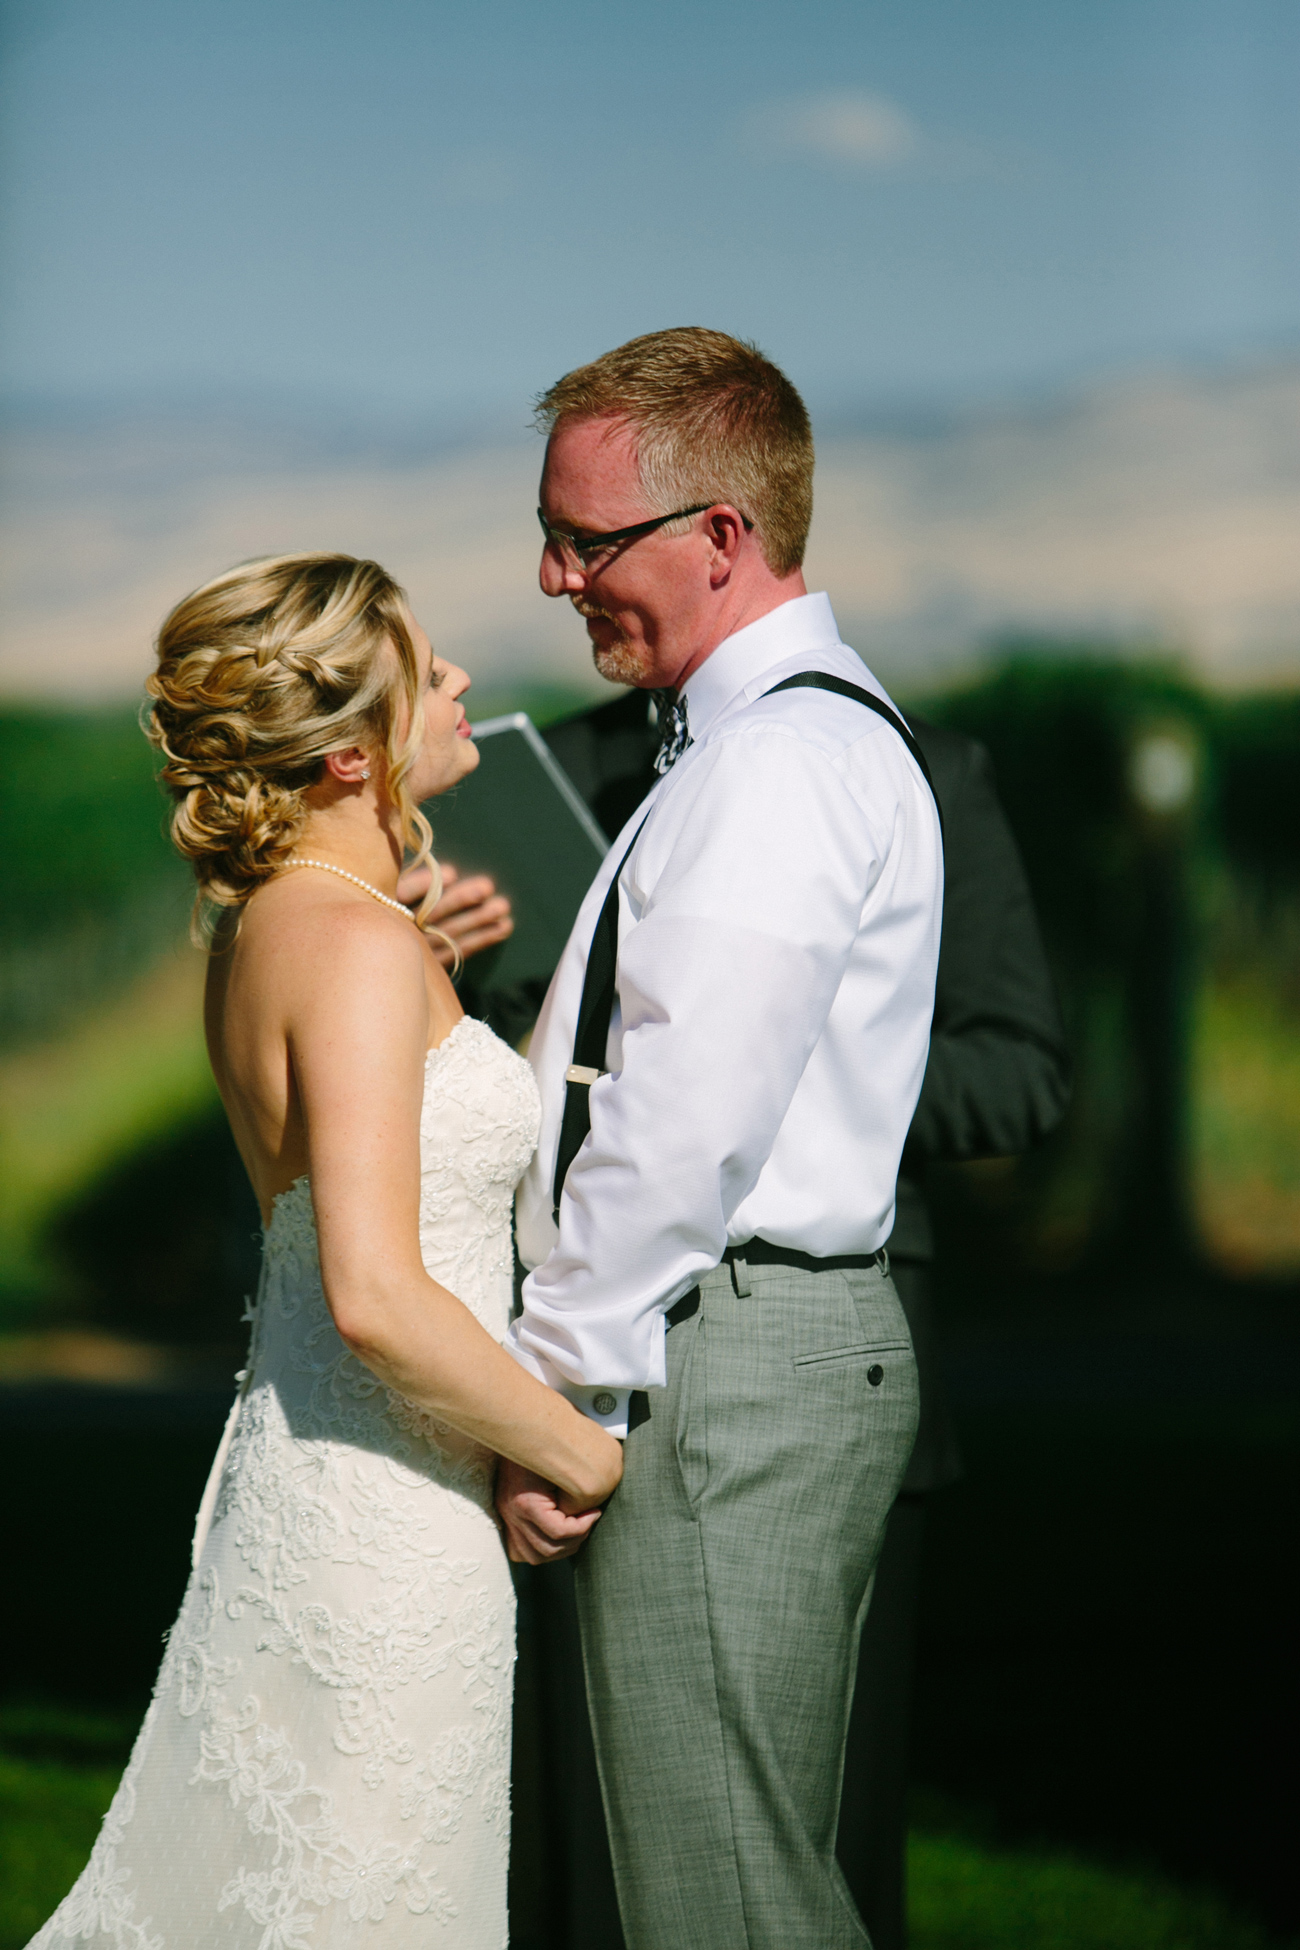 Basel_Cellars_Wedding_Photography_AMYIAN_39.JPG